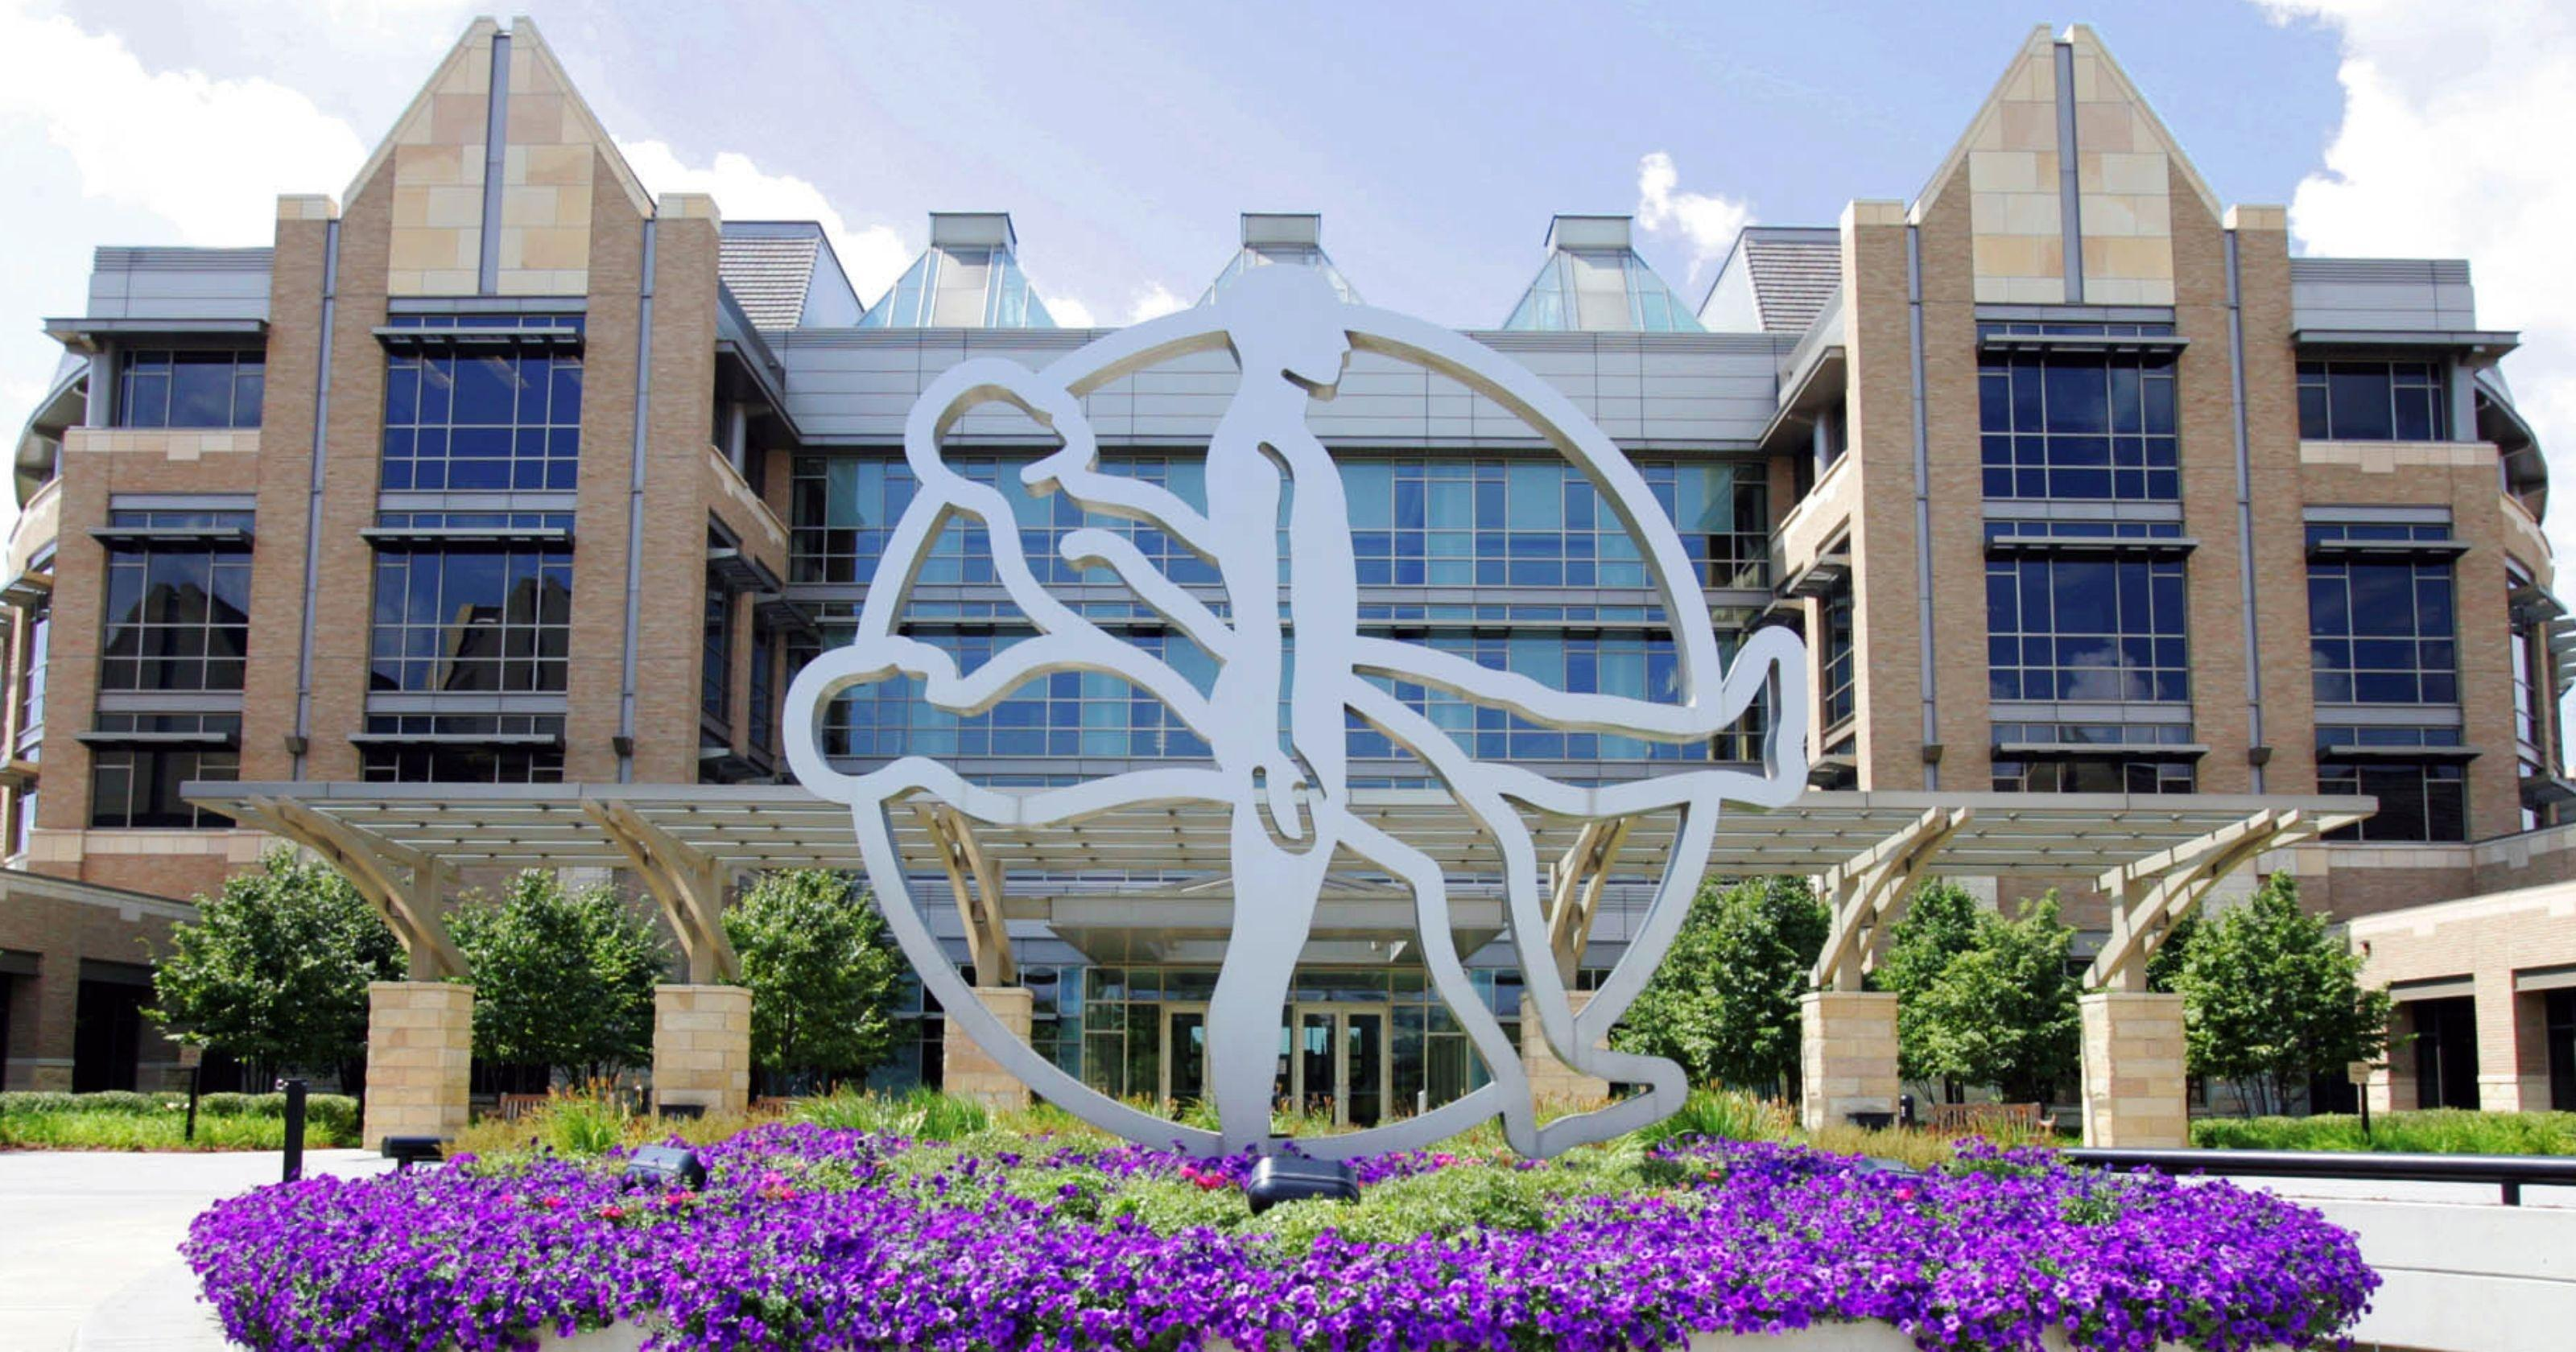 Medtronic Ceo Gets 35% Boost In Compensation